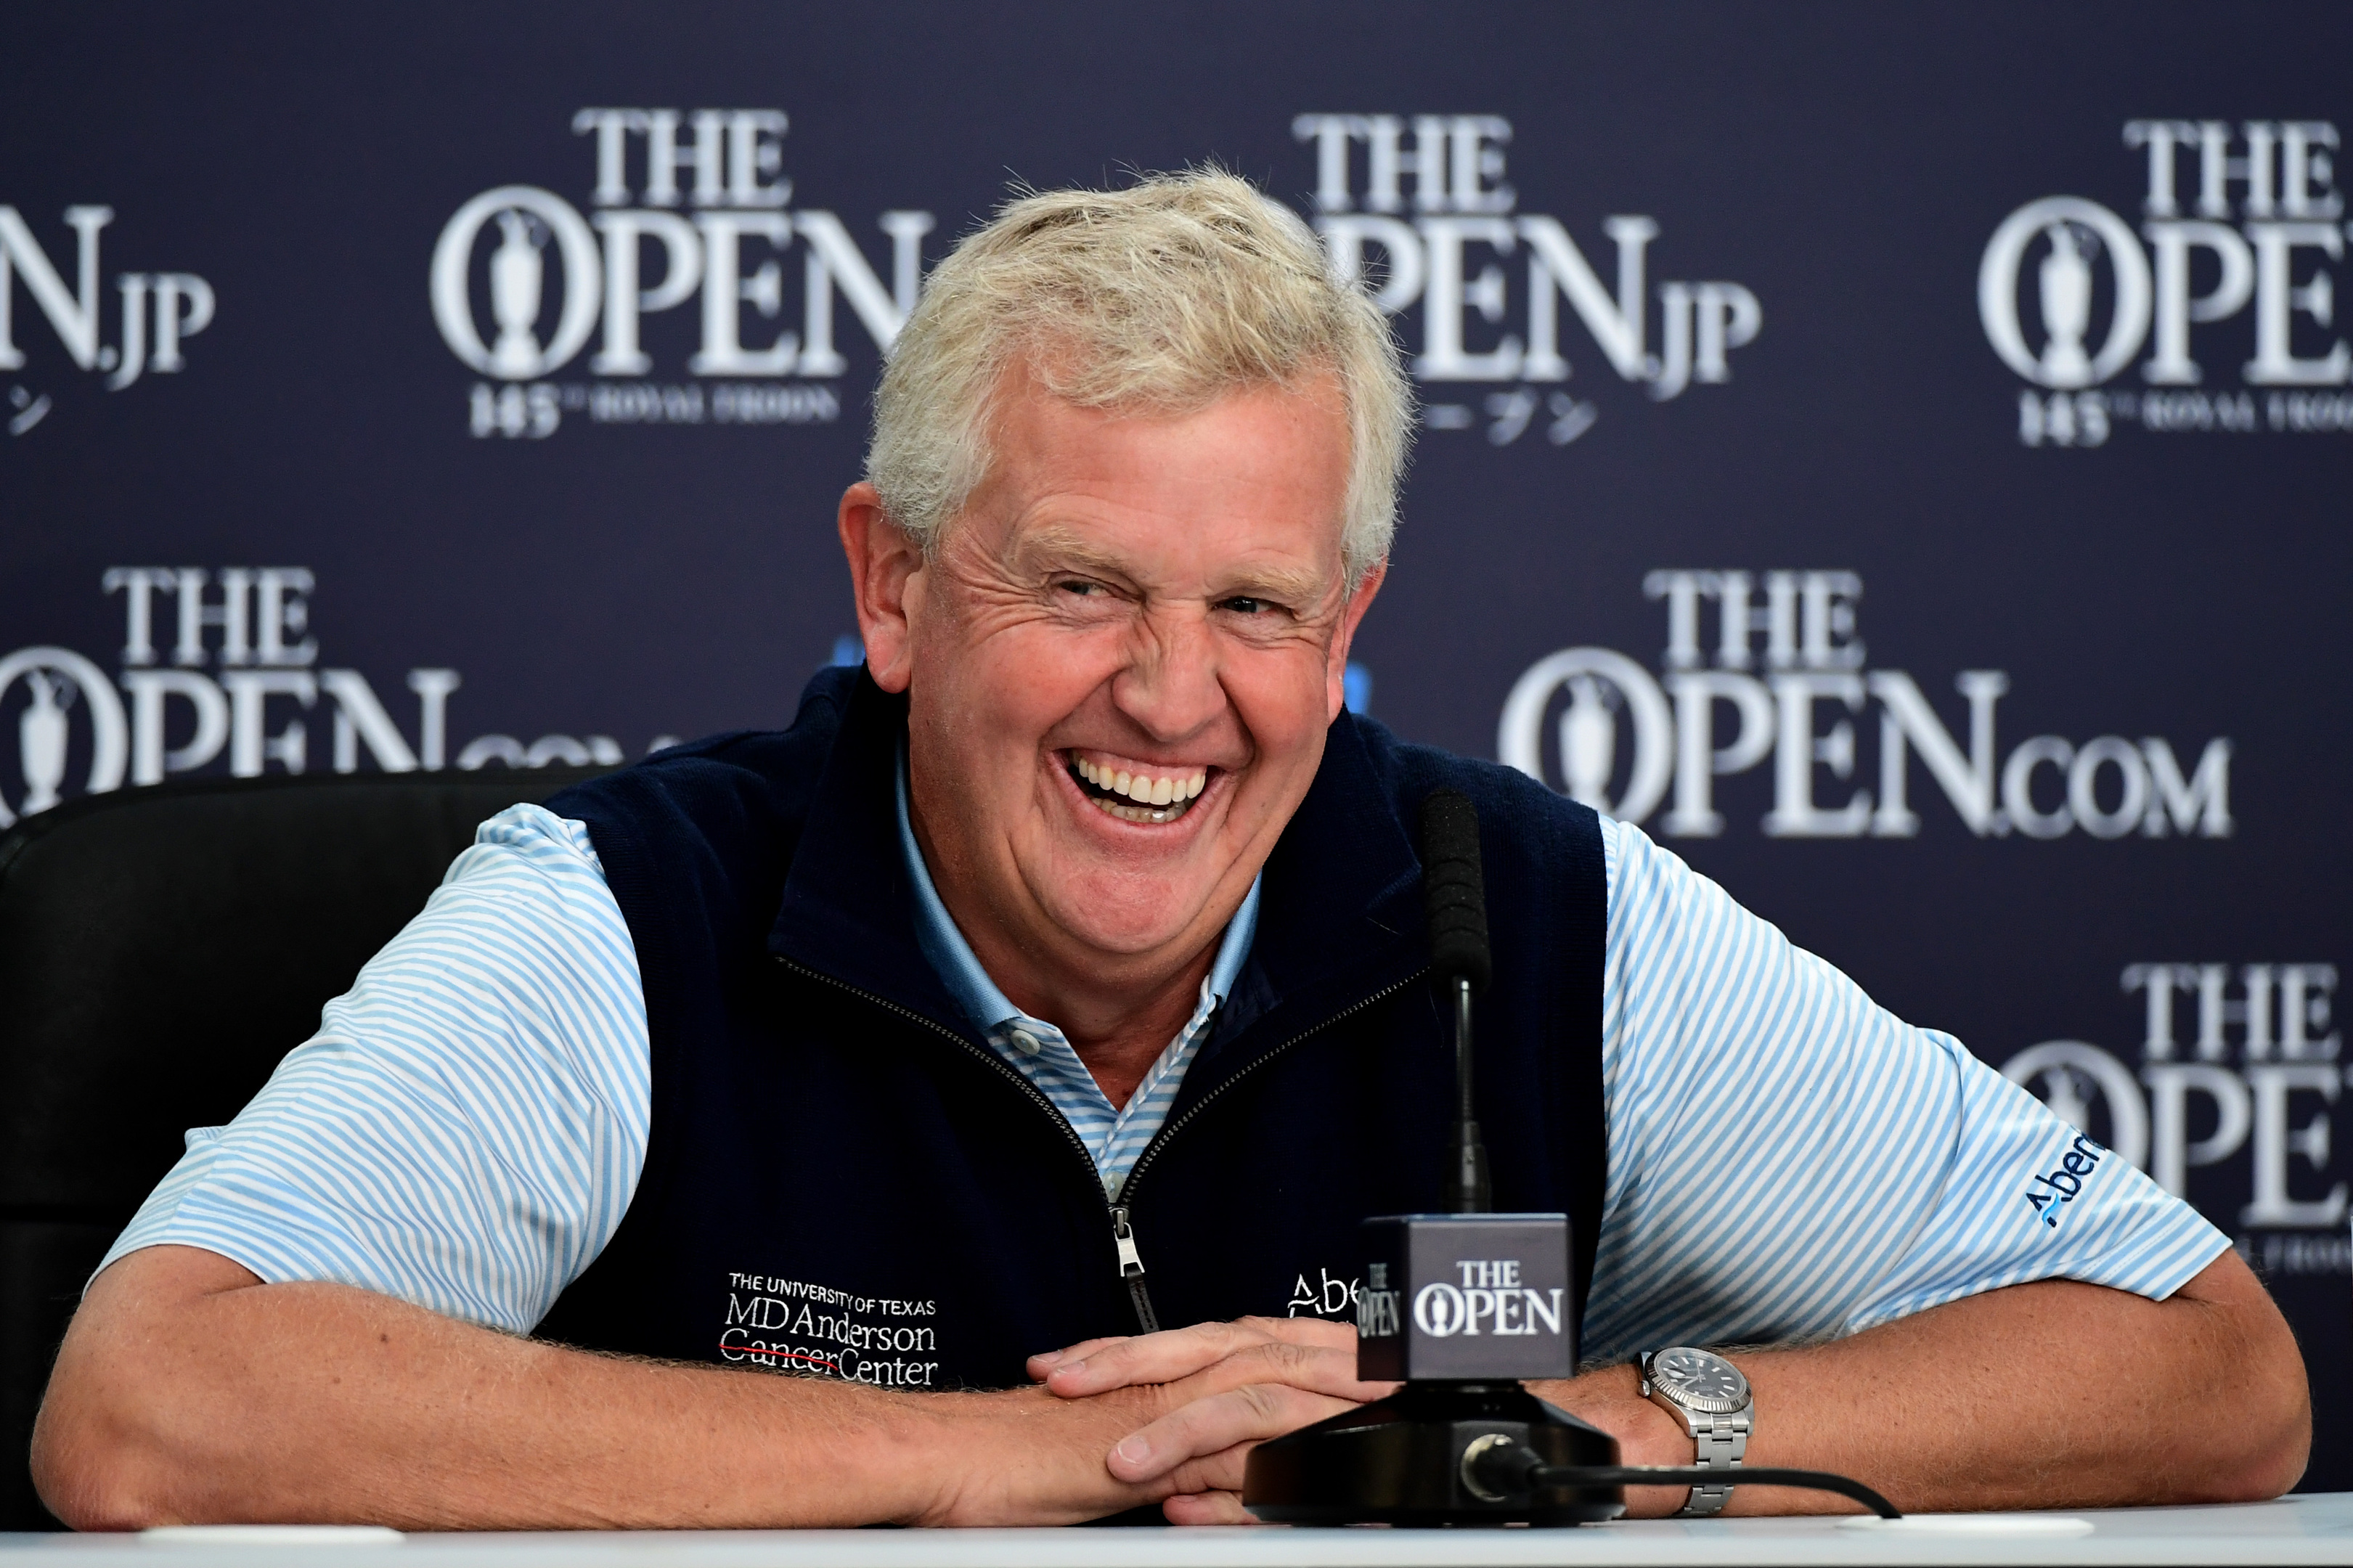 Colin Montgomerie grew up just five doors down from the Royal Troon clubhouse. Images)